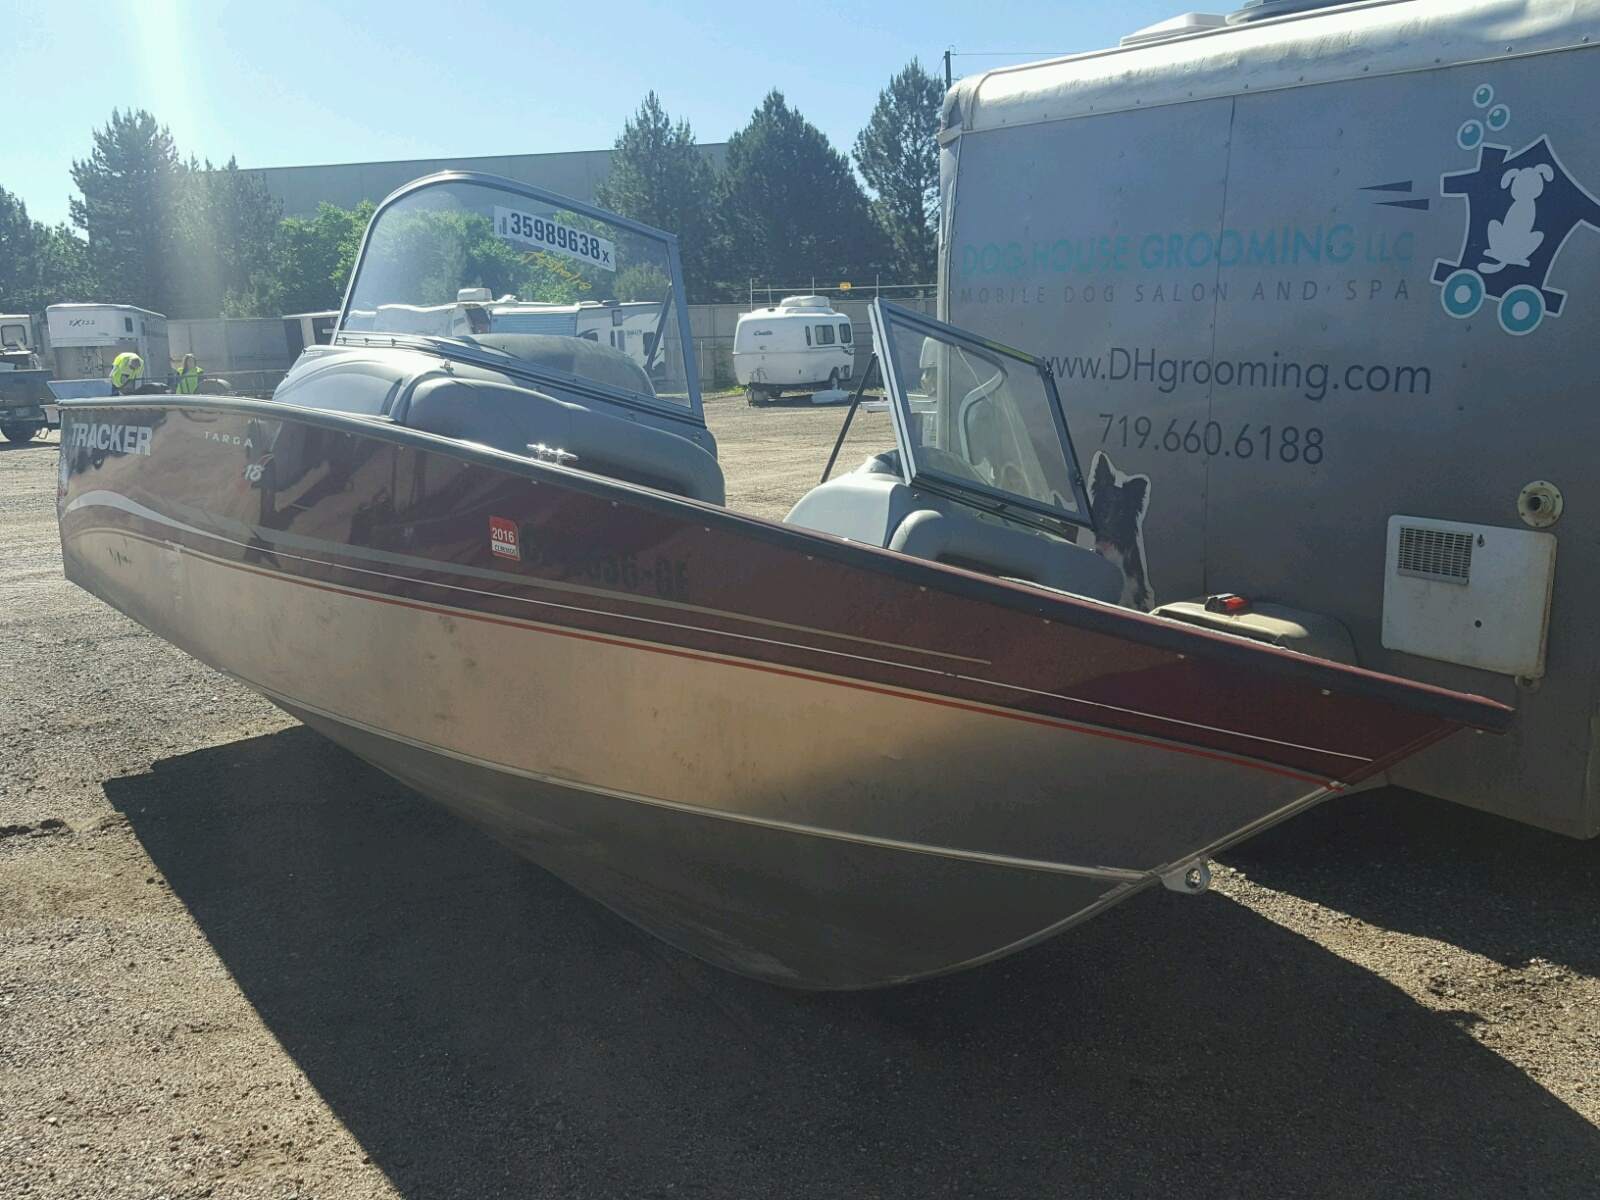 Salvage 2012 Tracker BOAT for sale